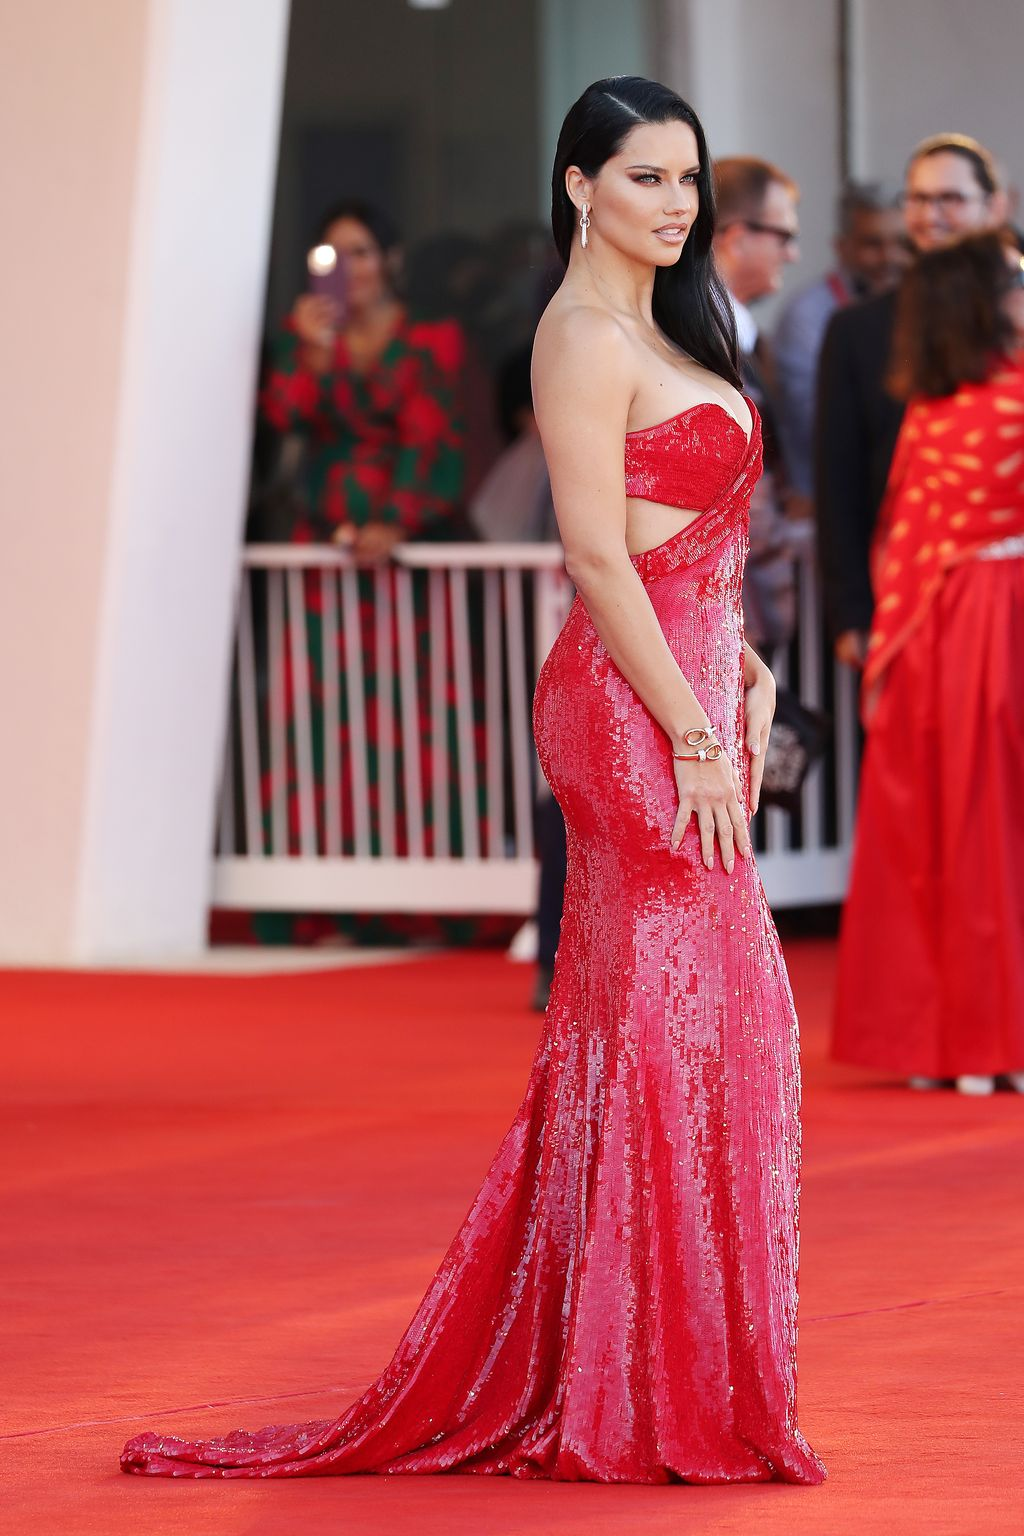 VENICE, ITALY - SEPTEMBER 01: Adriana Lima attends the red carpet of the movie